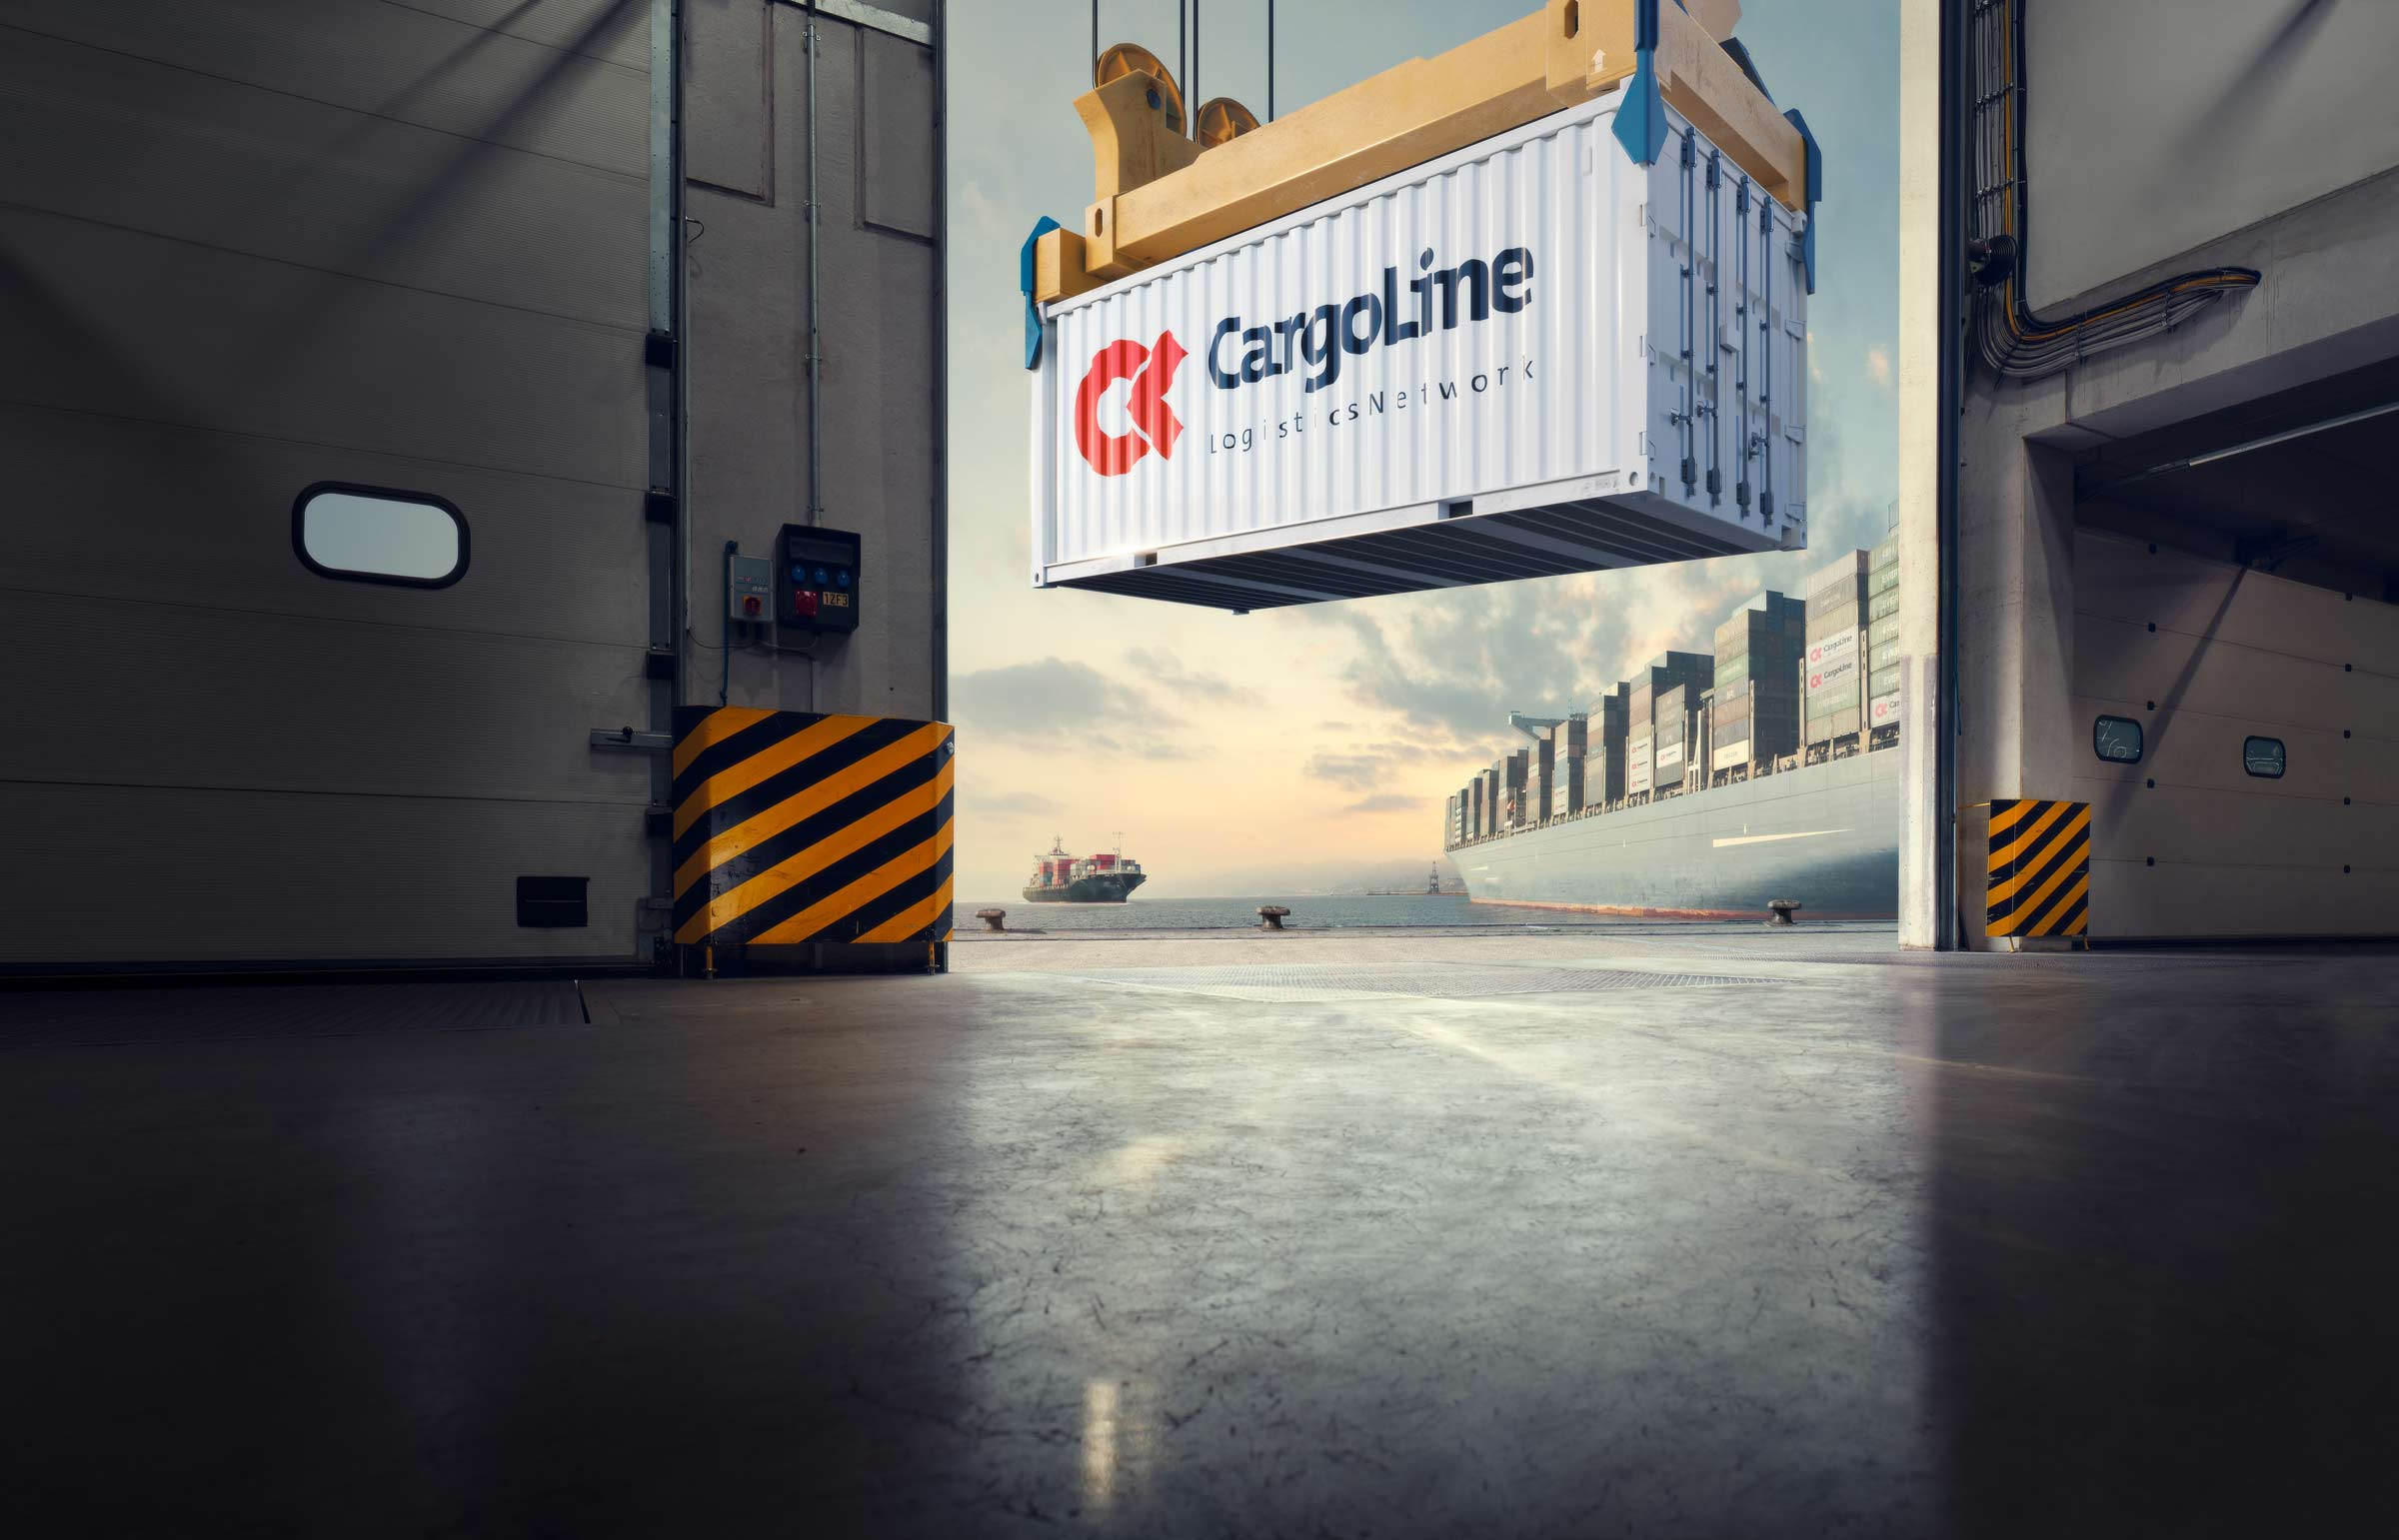 Cargoline logistics network postproduction